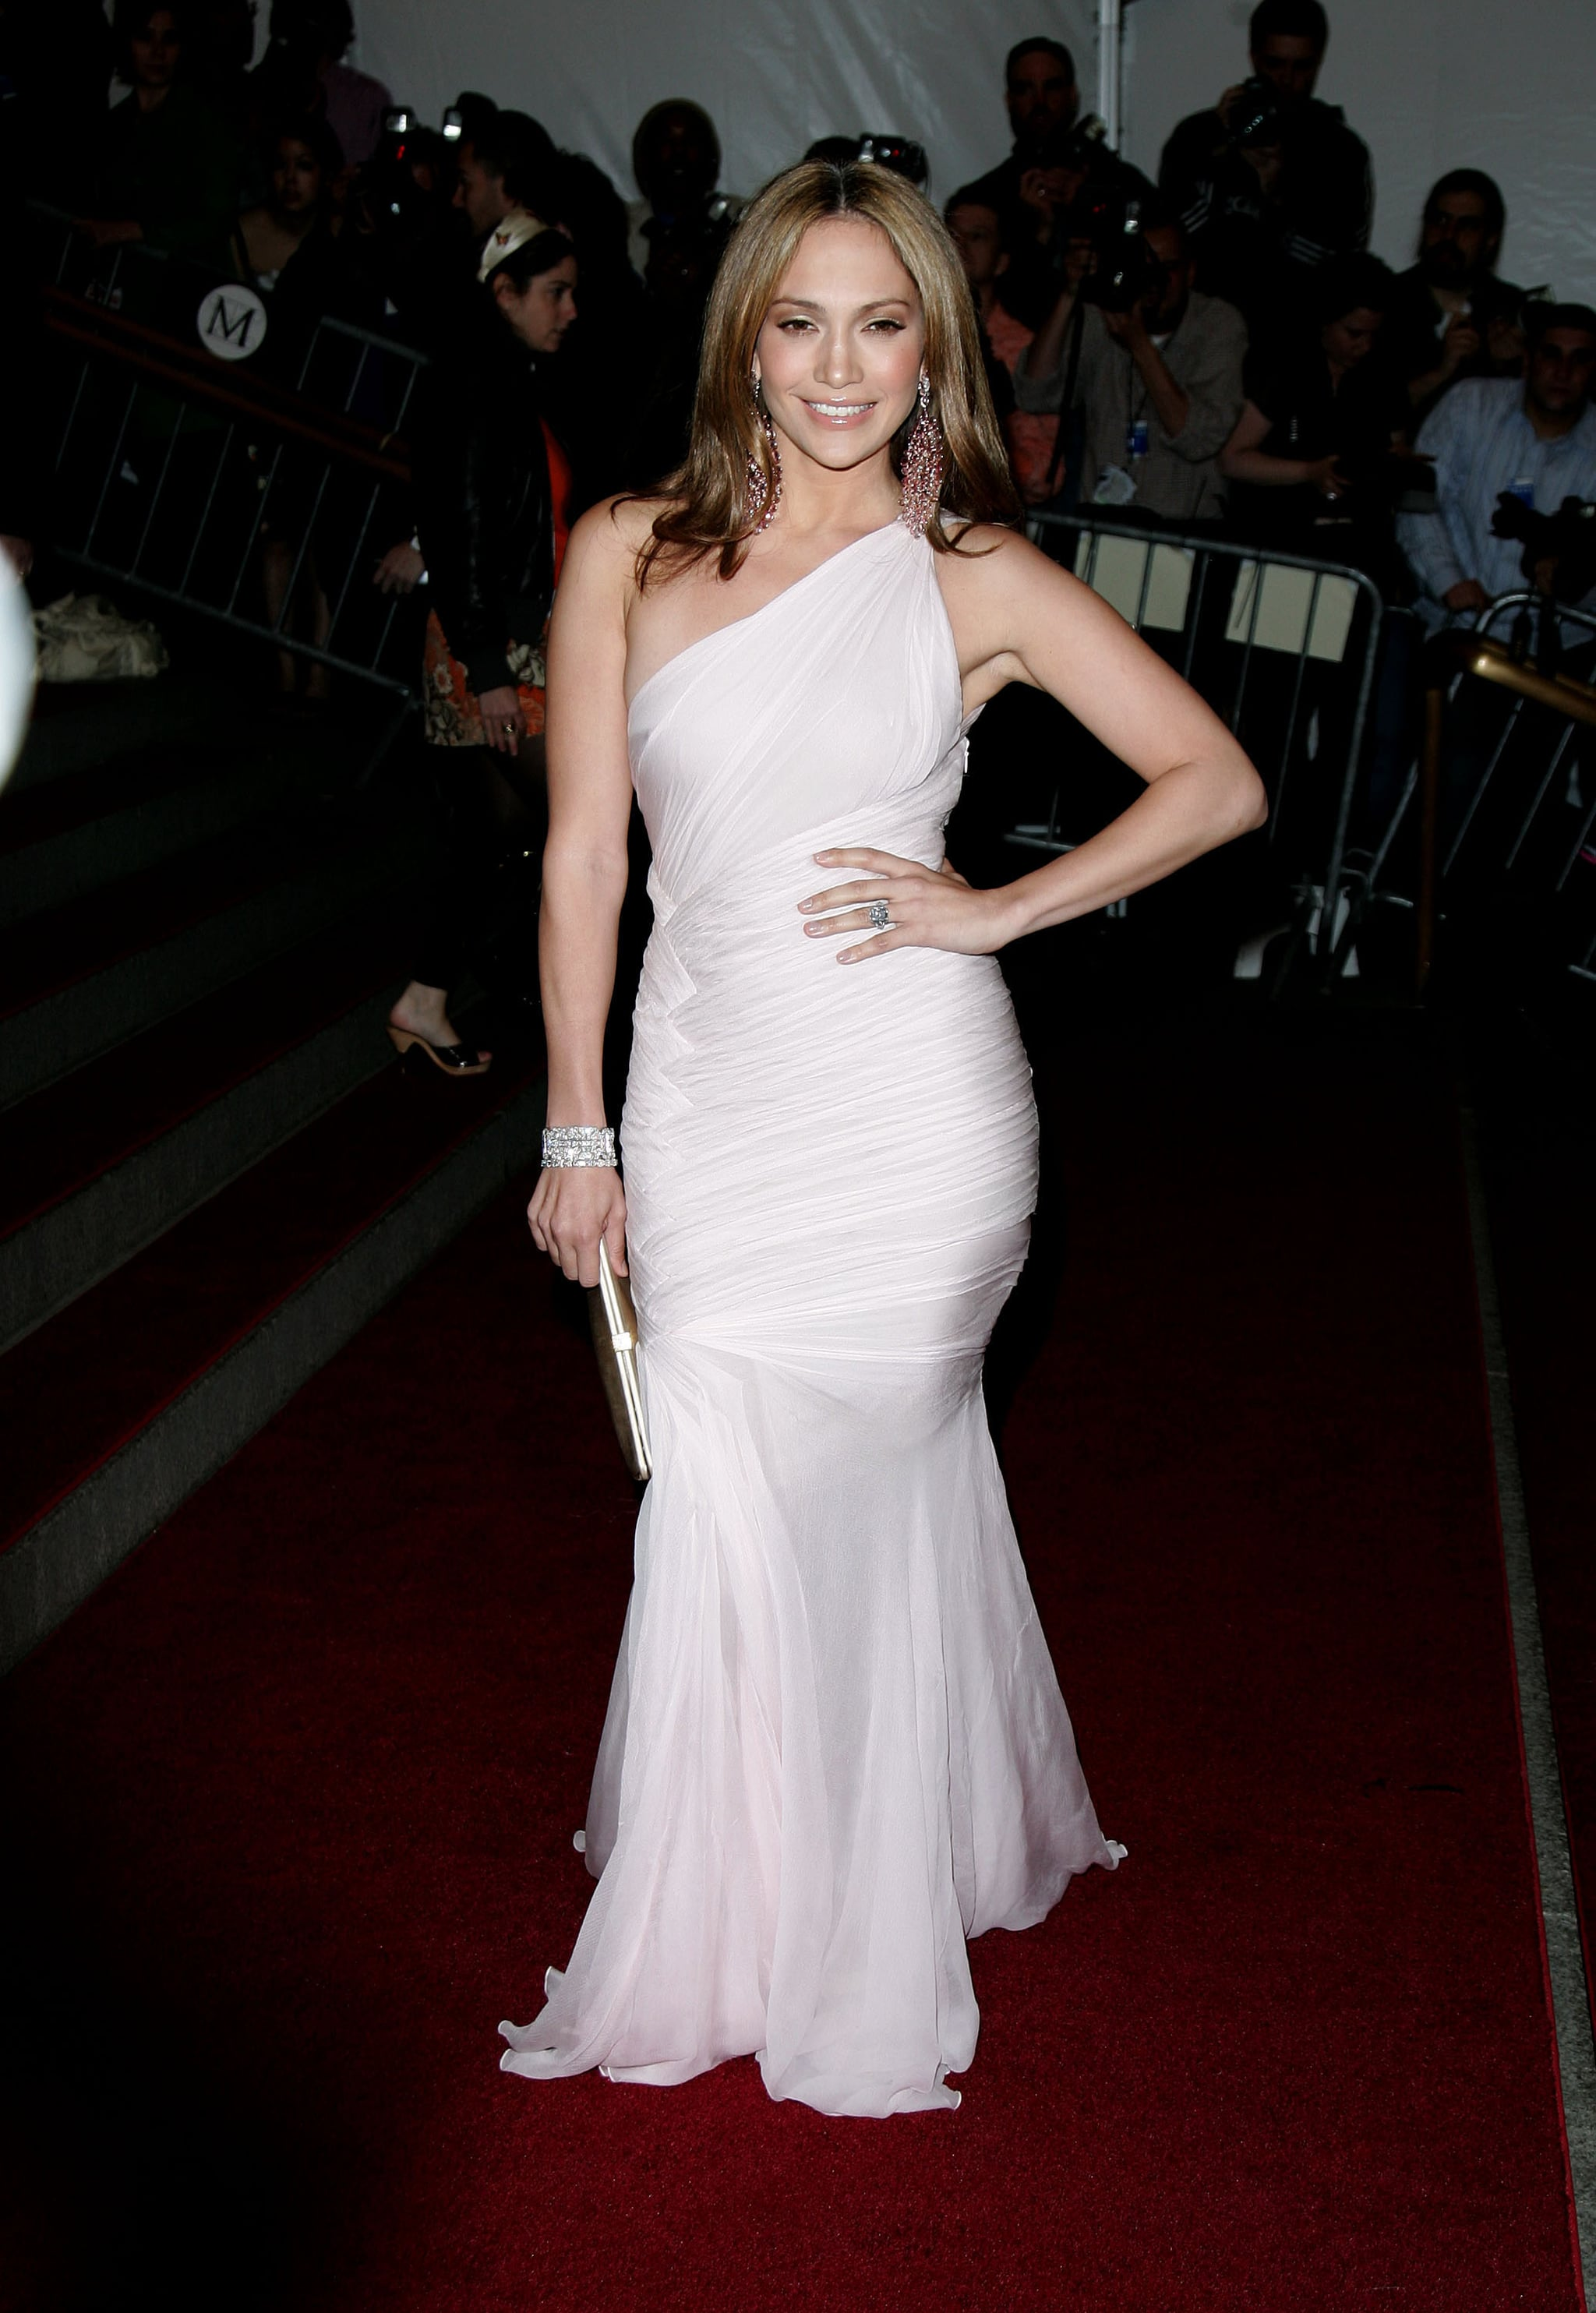 Goddess-like in a one-shouldered white gown at the Costume Institute Gala in '06.